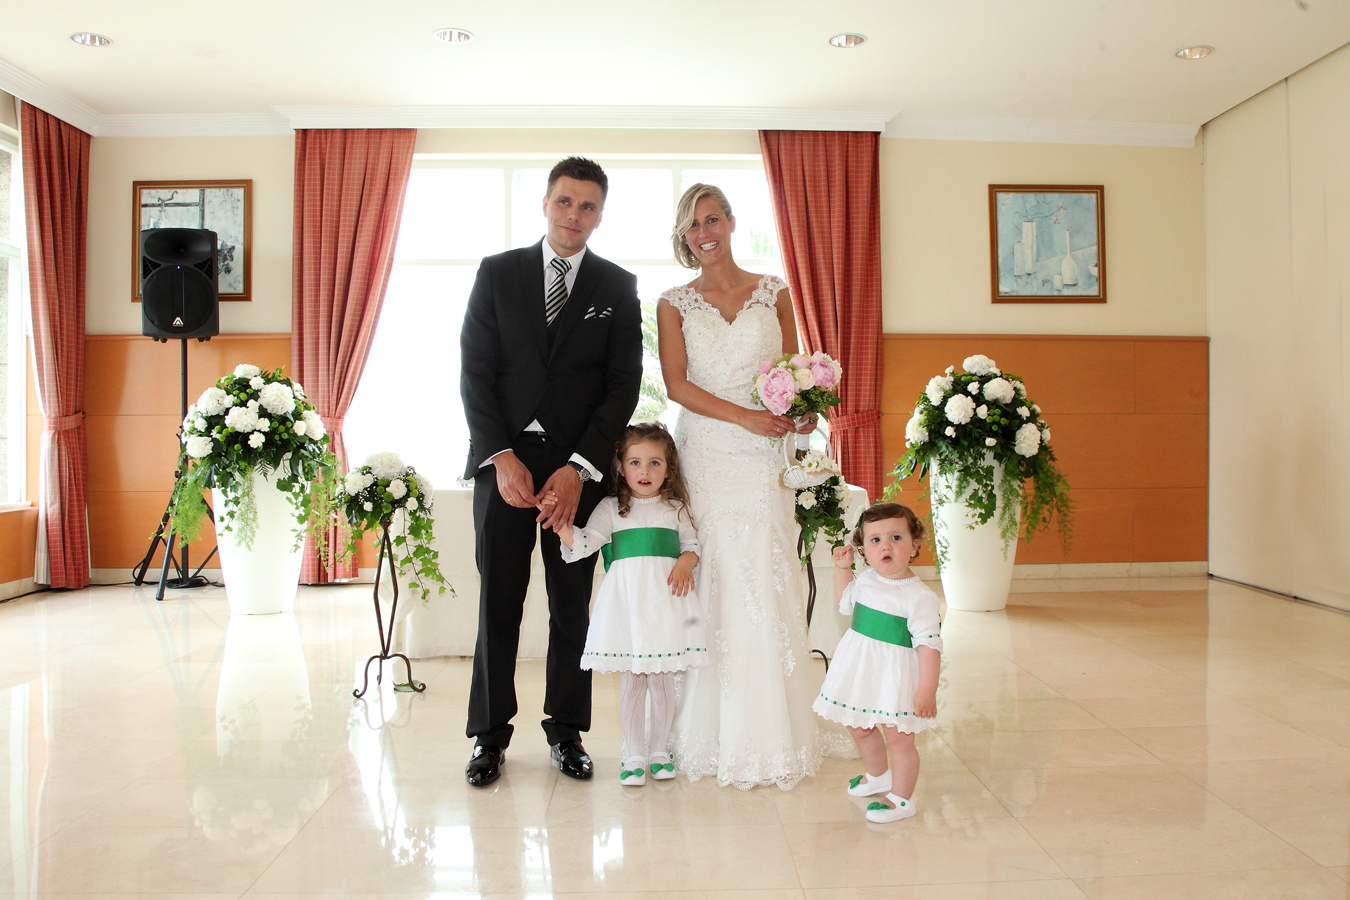 boda-hotel-louxo-ceremonia-civil-010